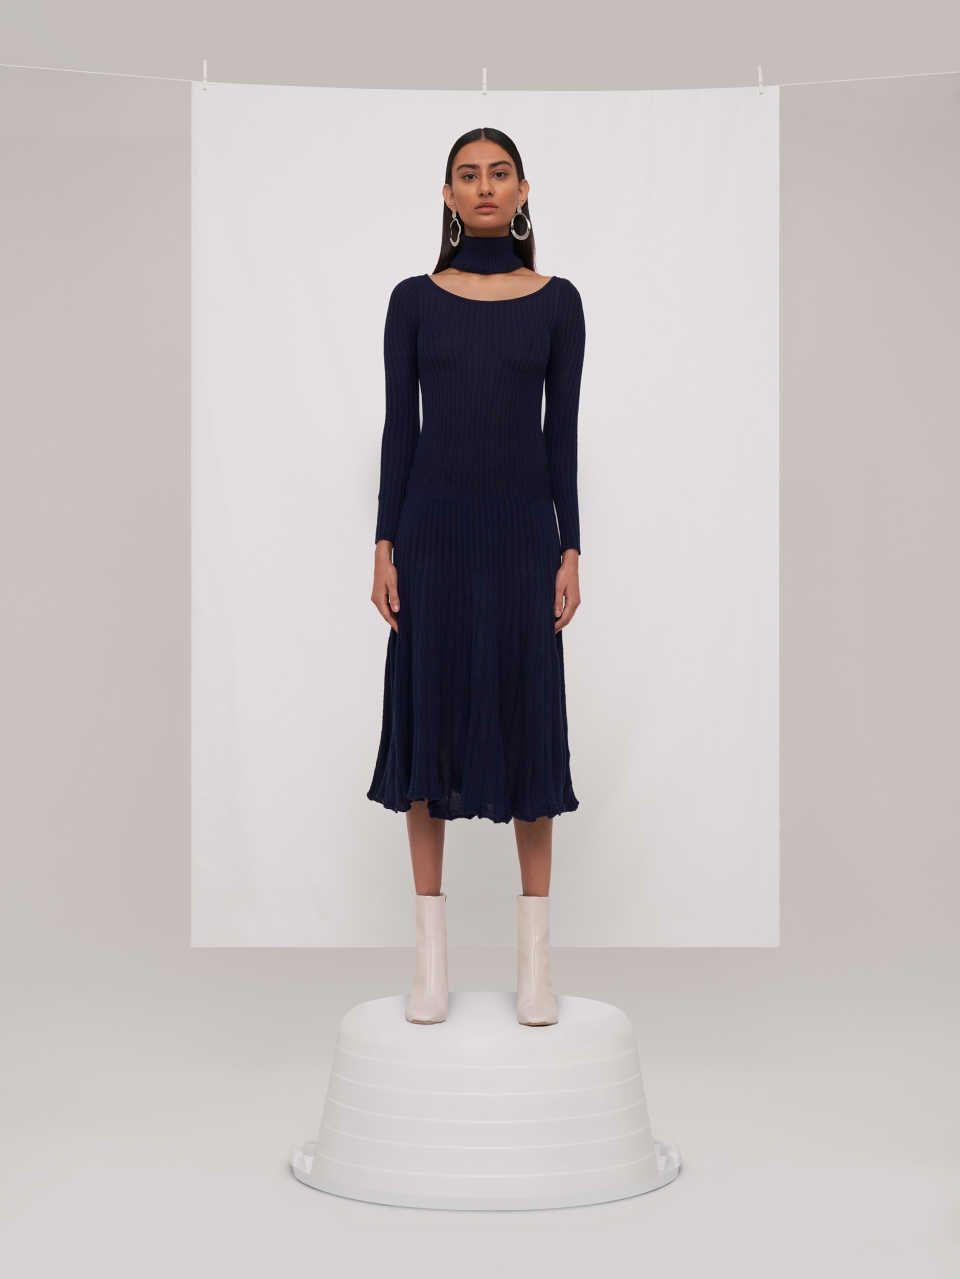 """<p>thebemagugu.com</p><p><strong>$2020.00</strong></p><p><a href=""""https://www.thebemagugu.com/products/collarbone-knitted-dress"""" rel=""""nofollow noopener"""" target=""""_blank"""" data-ylk=""""slk:Shop Now"""" class=""""link rapid-noclick-resp"""">Shop Now</a></p>"""